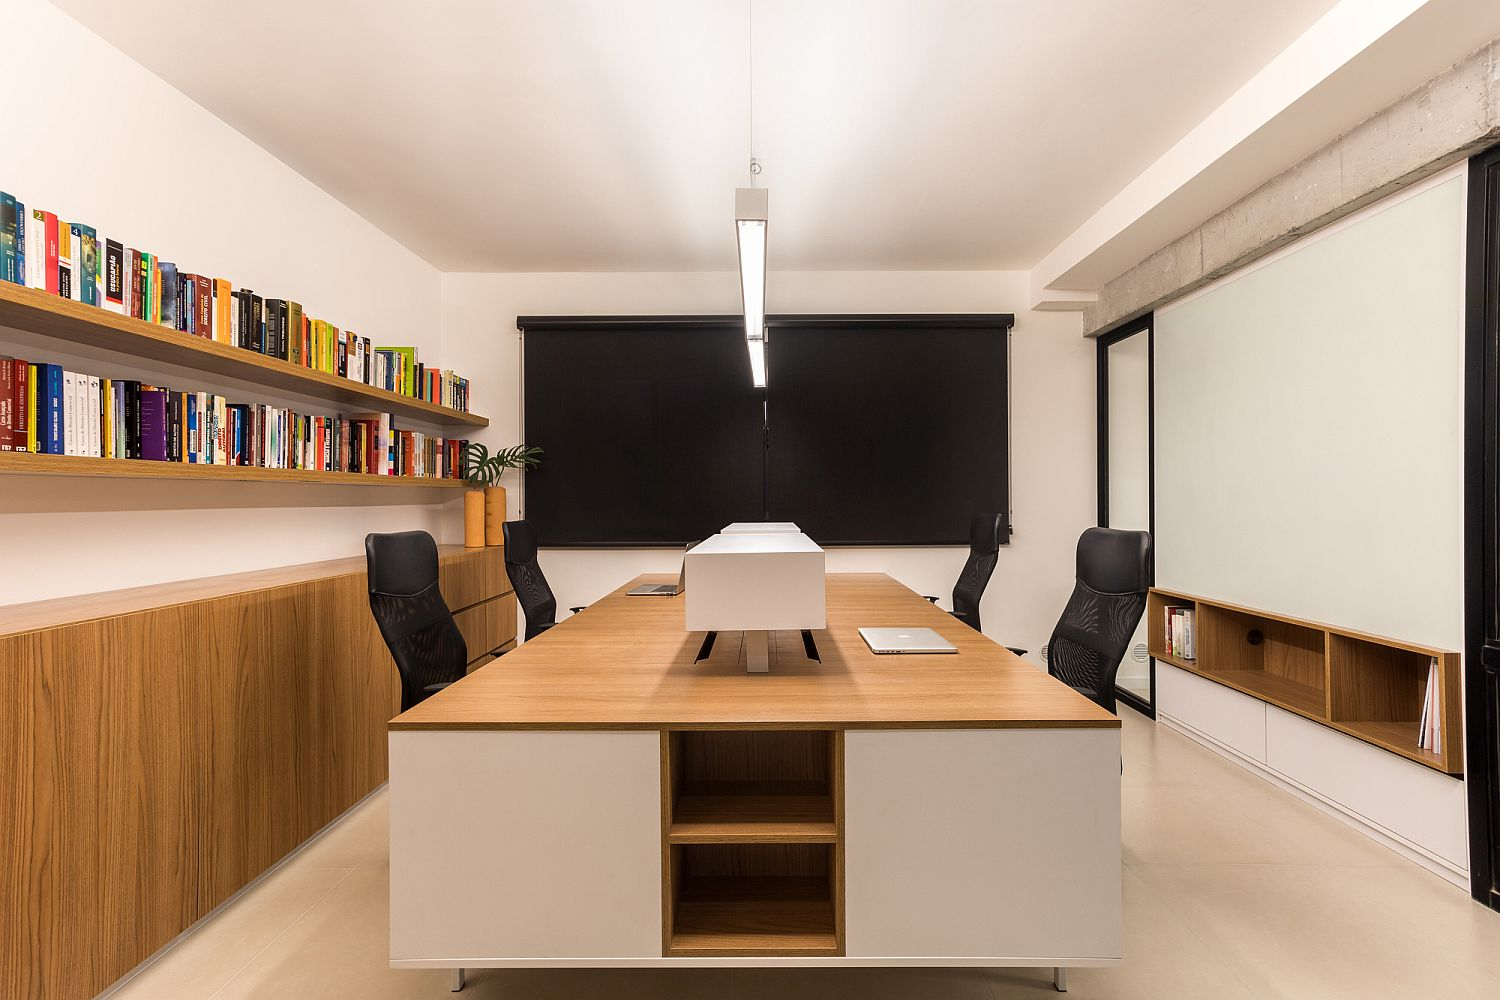 Neutral hues shape the meeting room with wood and white taking over